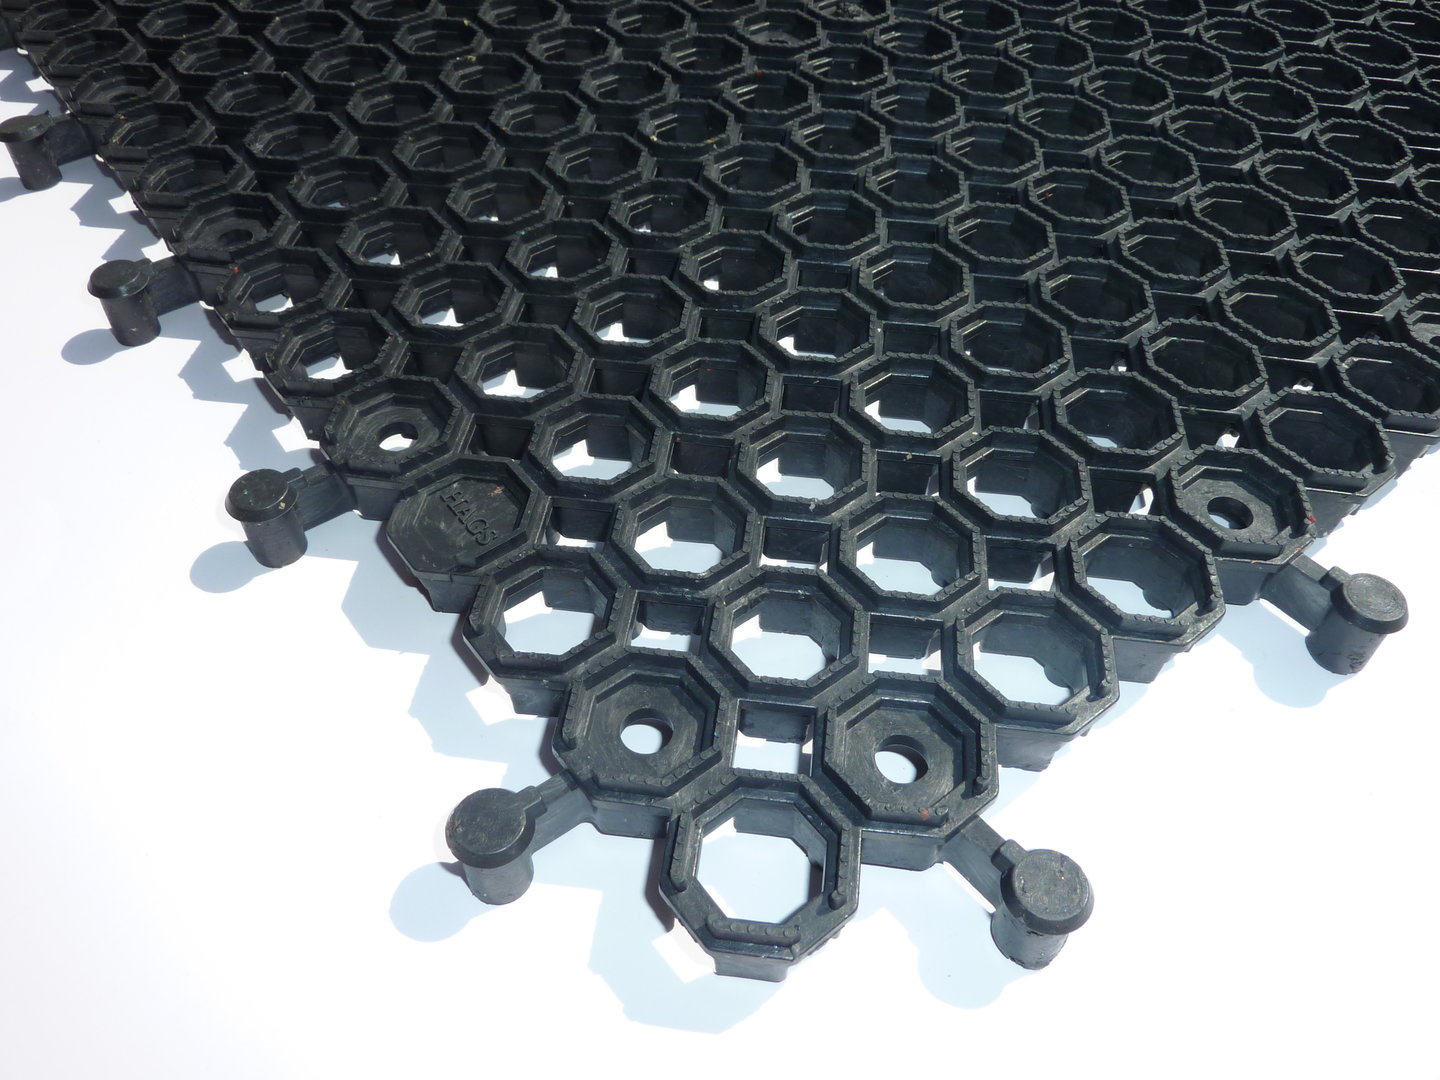 7701 Honeycomb Interlocking Modular Tile